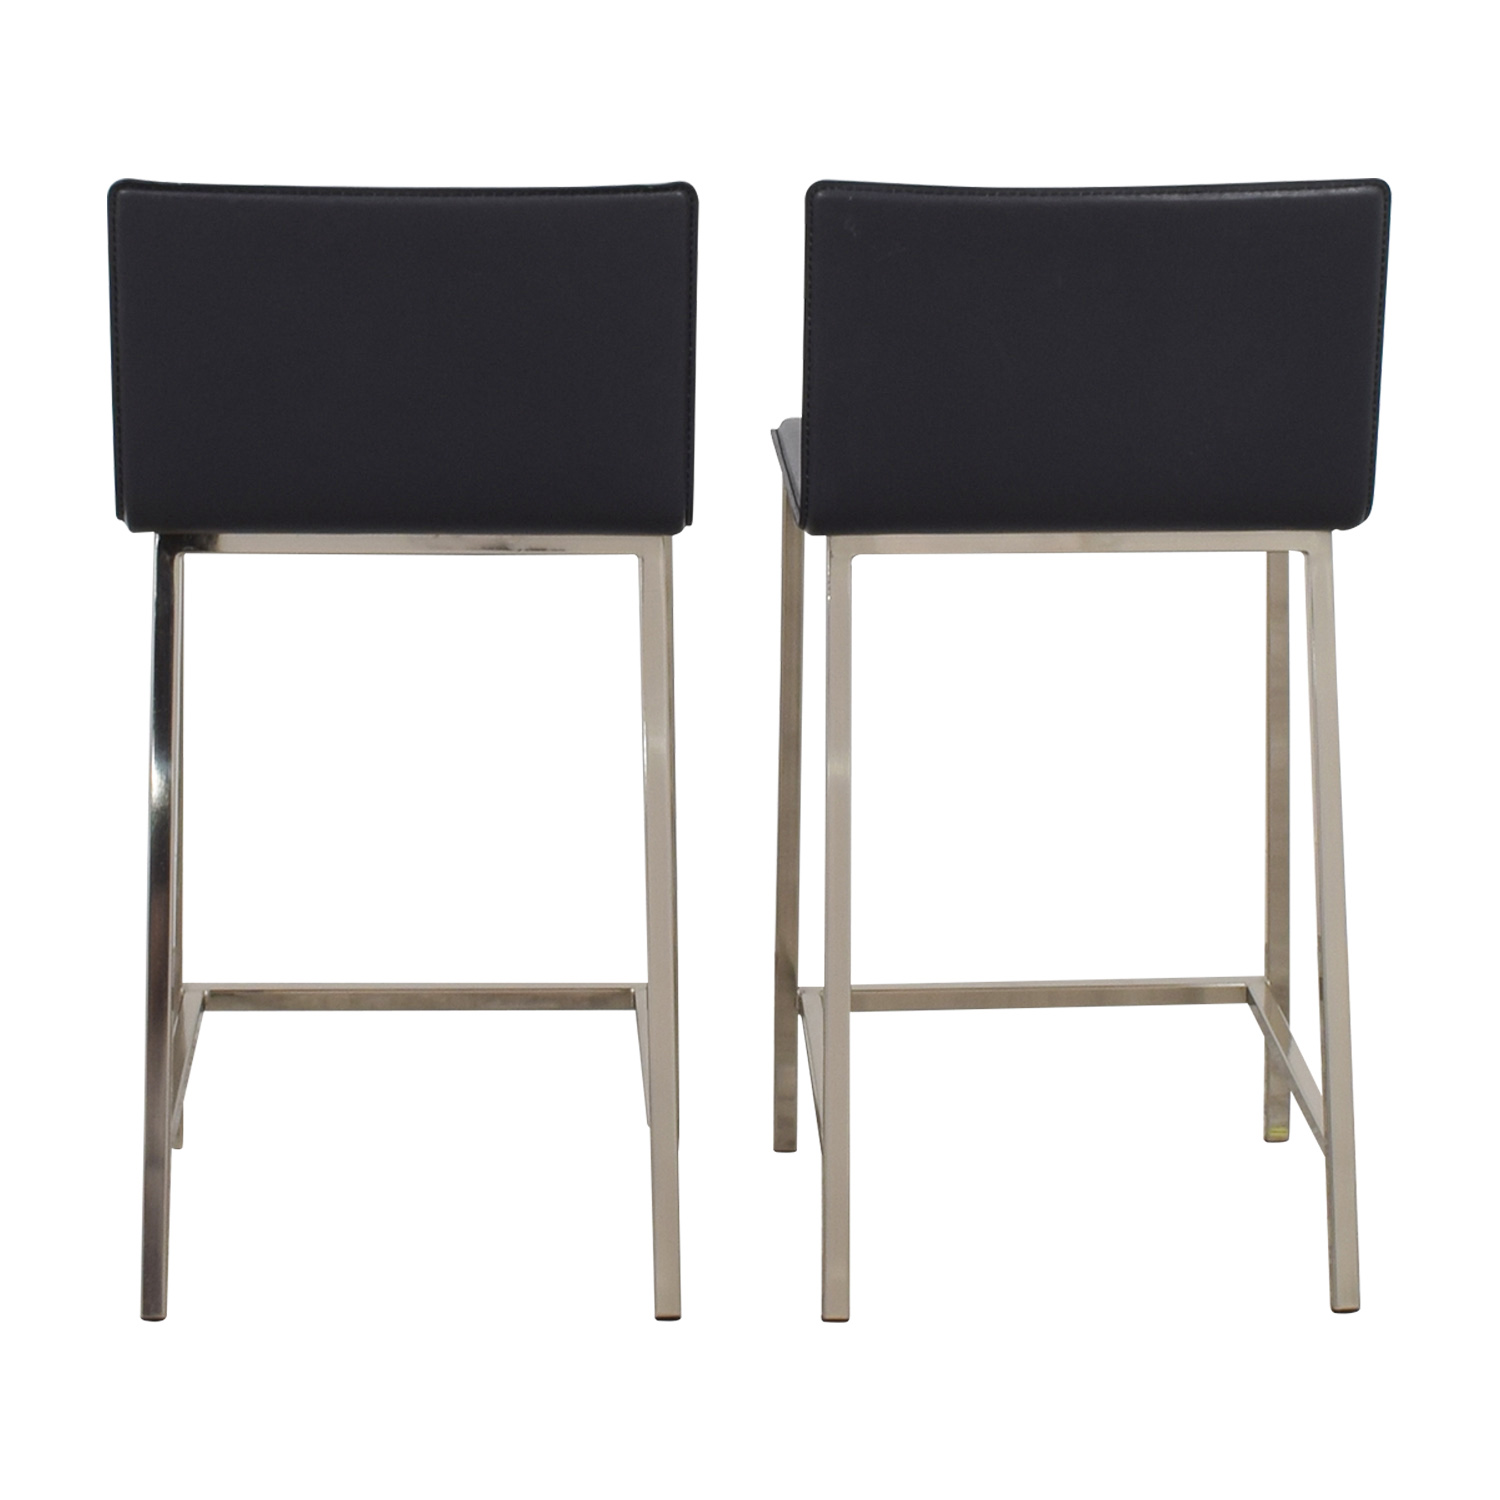 CB2 CB2 Grey Leather Bar Stools Chairs